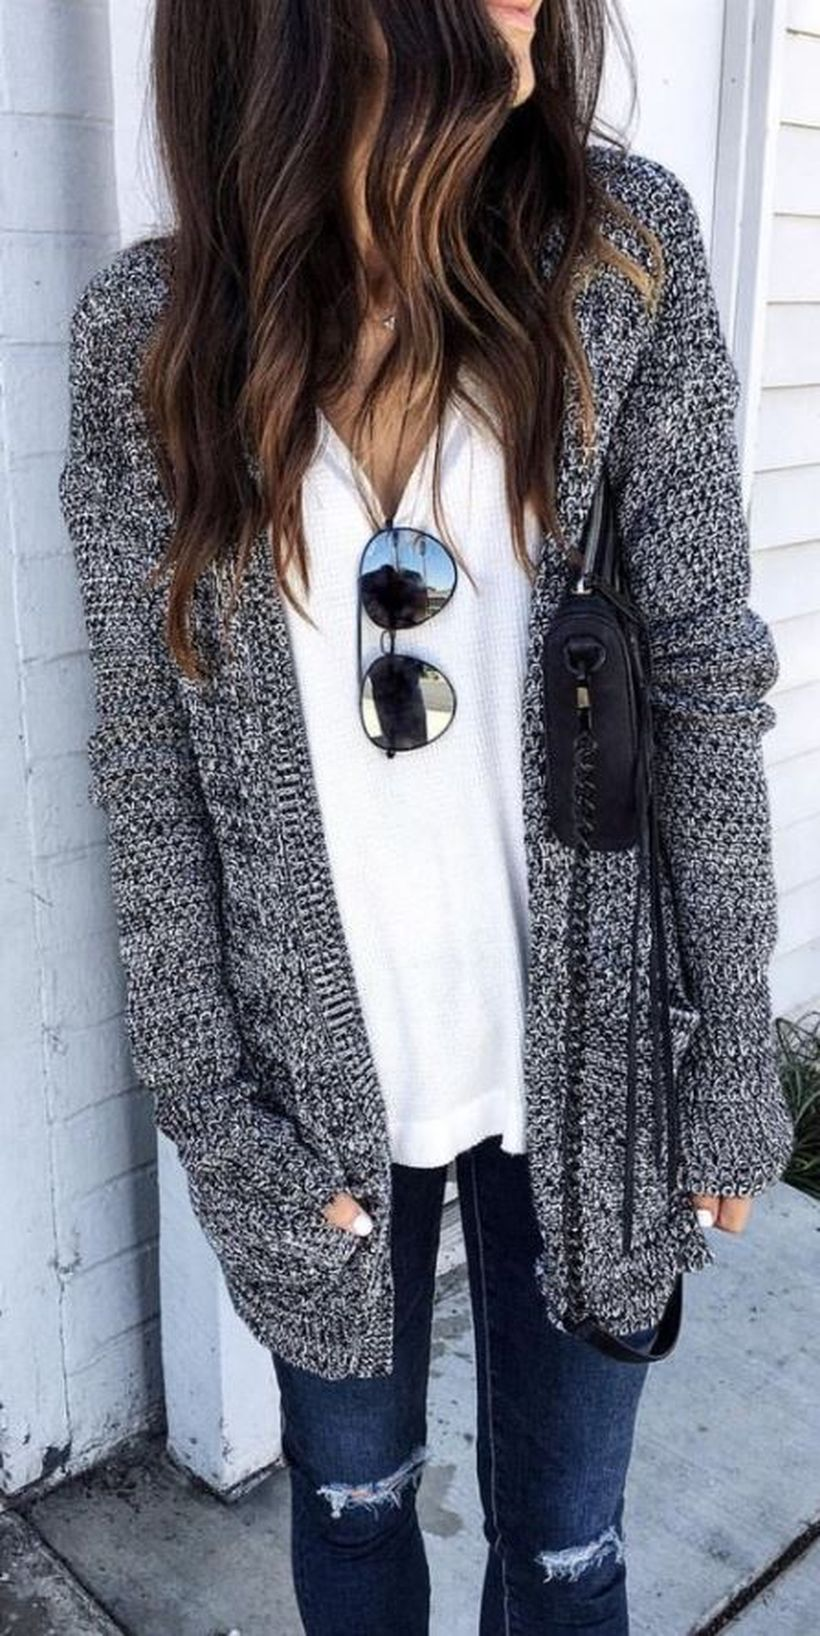 Casual fall fashions trend inspirations 2017 36 - Fashion Best